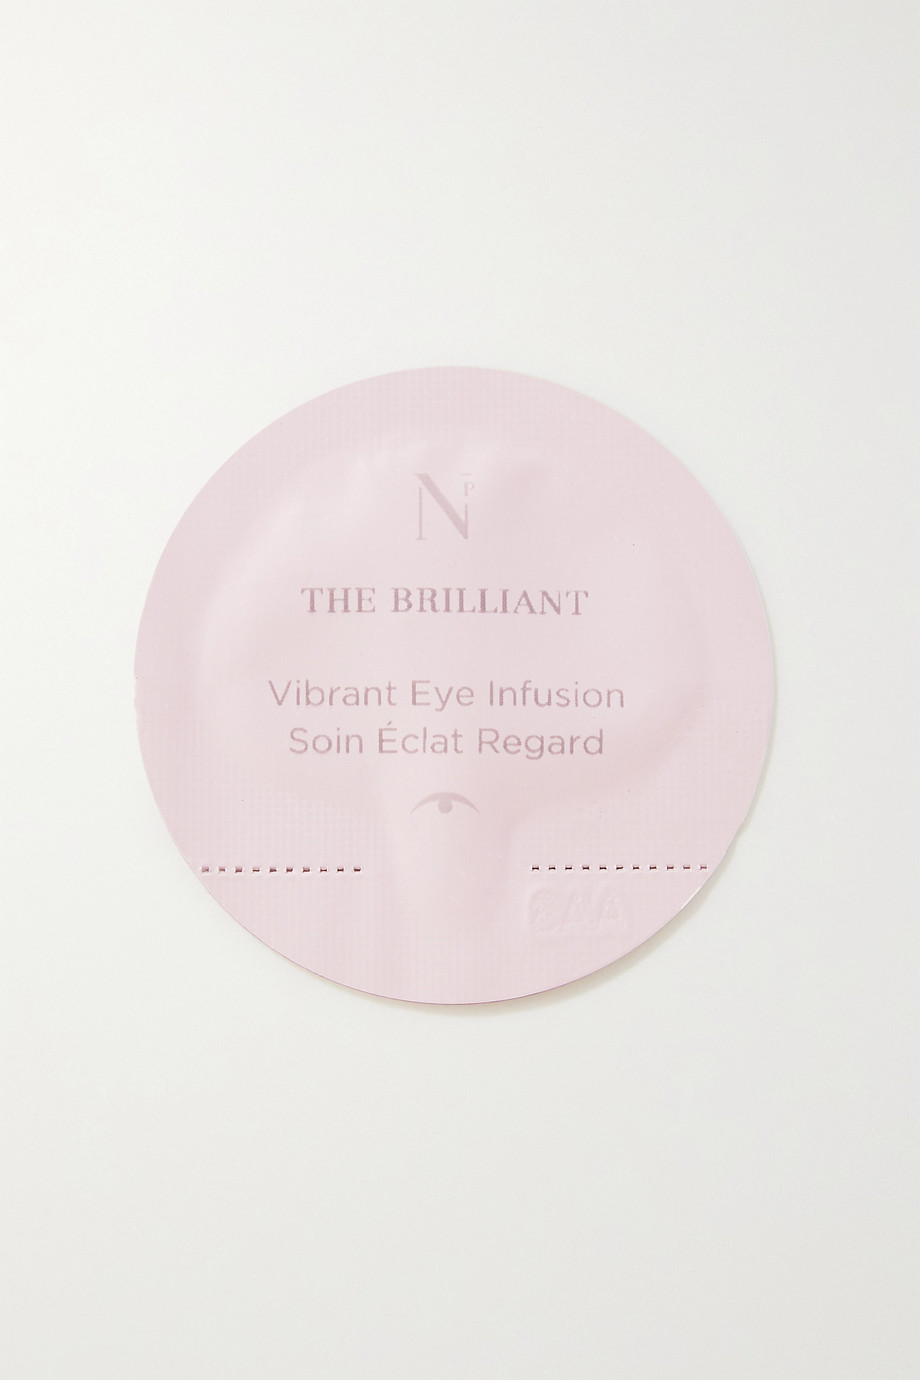 NOBLE PANACEA The Brilliant Vibrant Eye Infusion Refill, 30 x 0.3ml